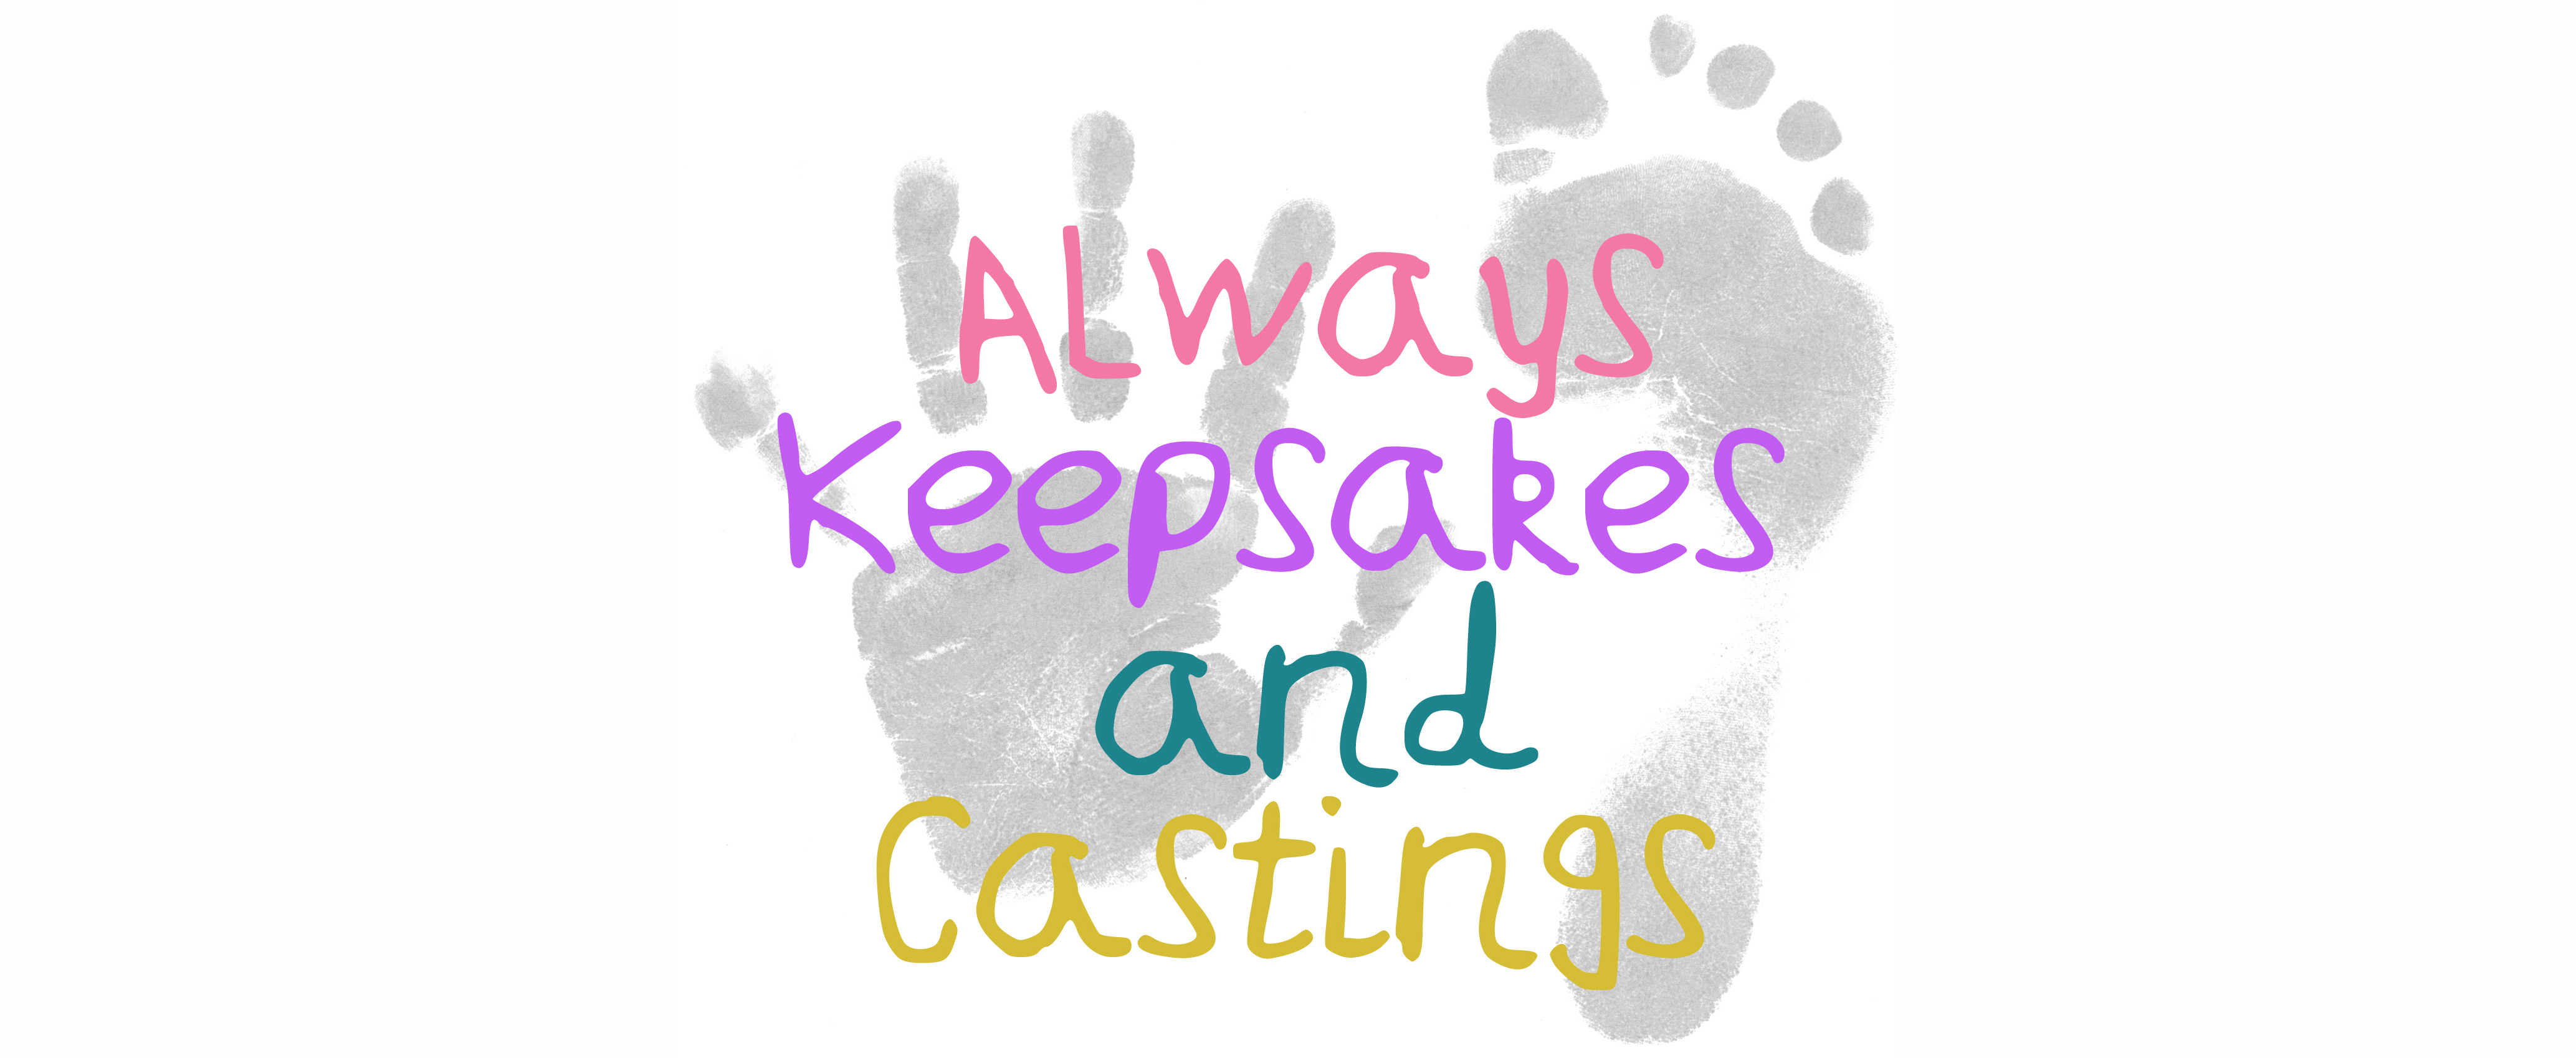 Always Keepsakes and Castings